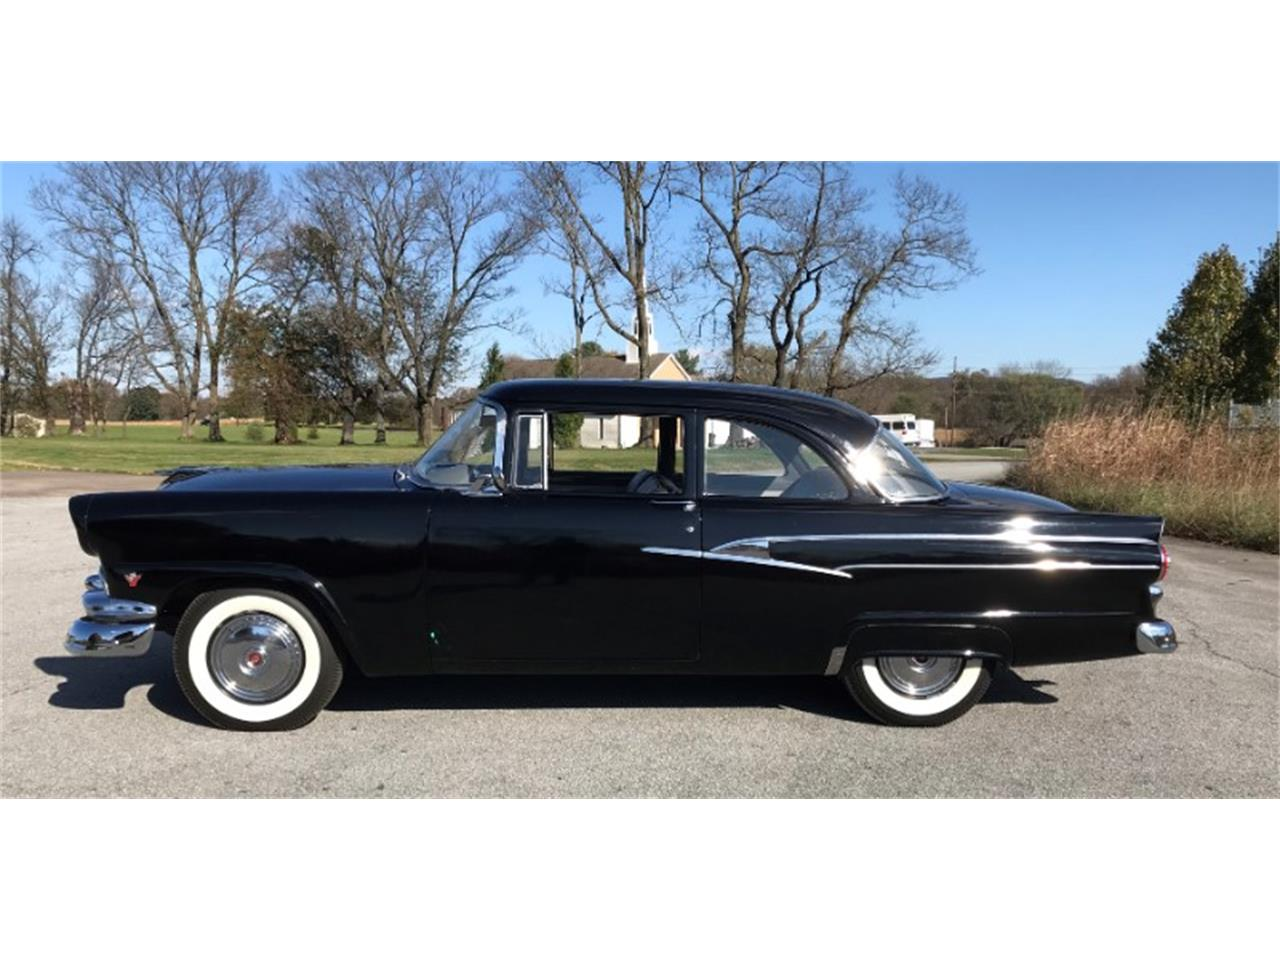 Large Picture of Classic '56 Ford Mainline located in Harpers Ferry West Virginia - $23,500.00 - OVB5